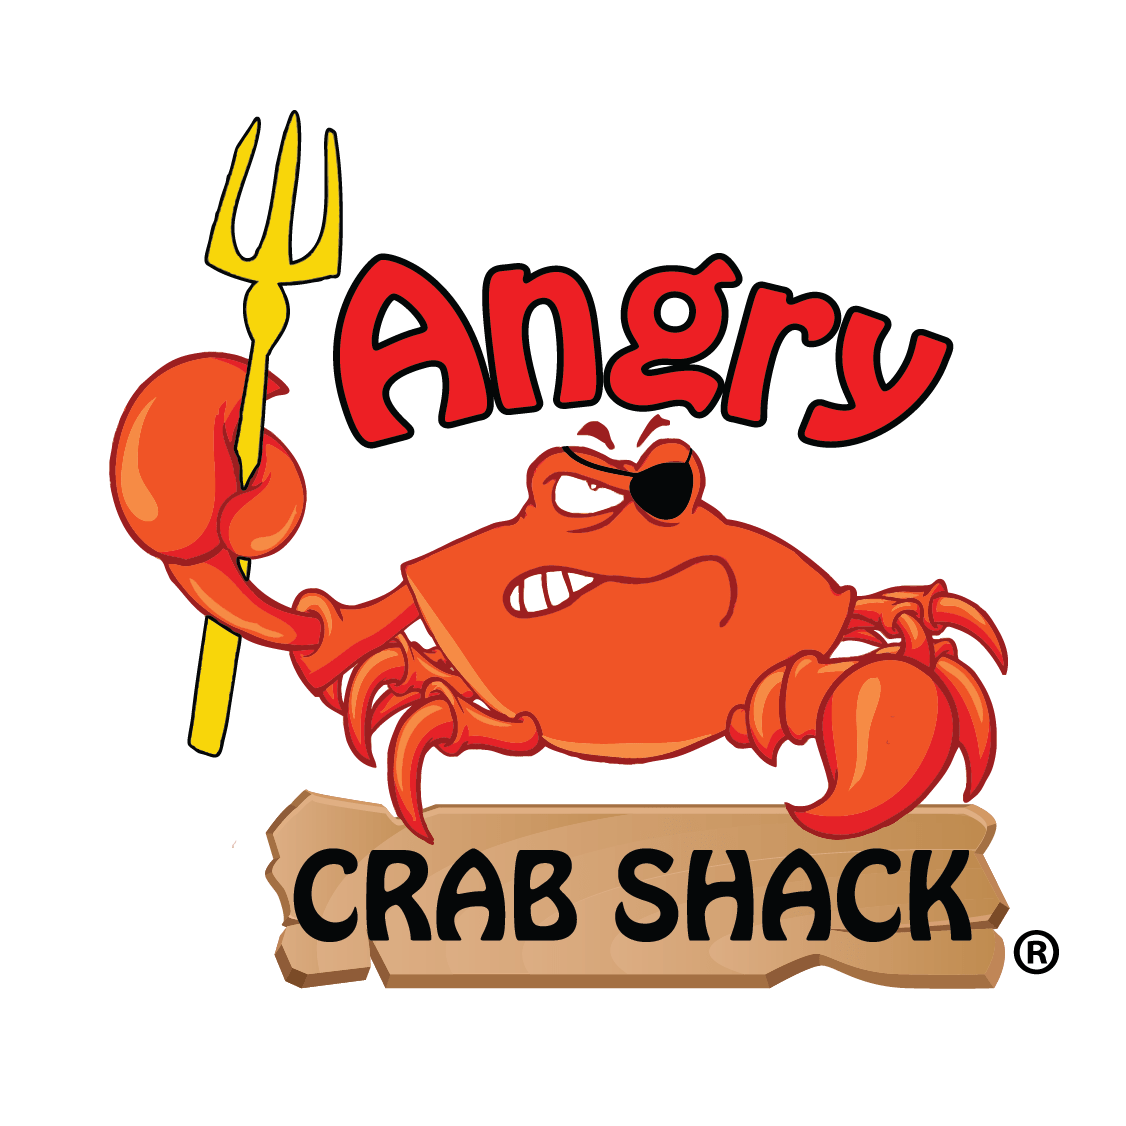 The Crab-overlay